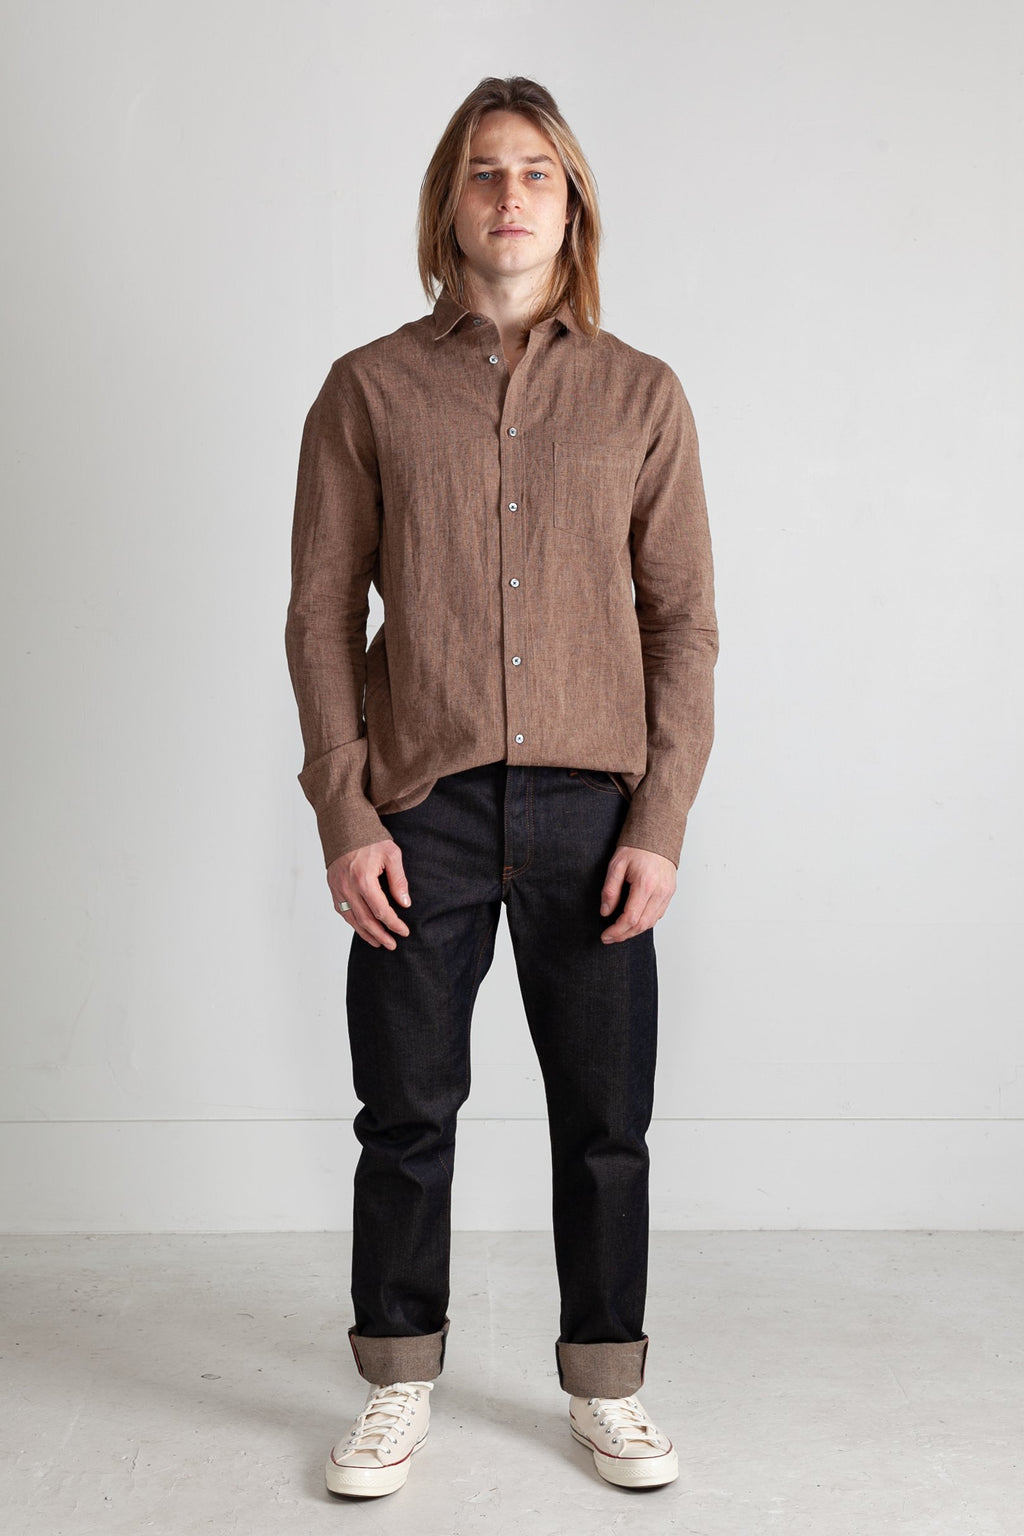 Japanese Euro Linen in Brown 01